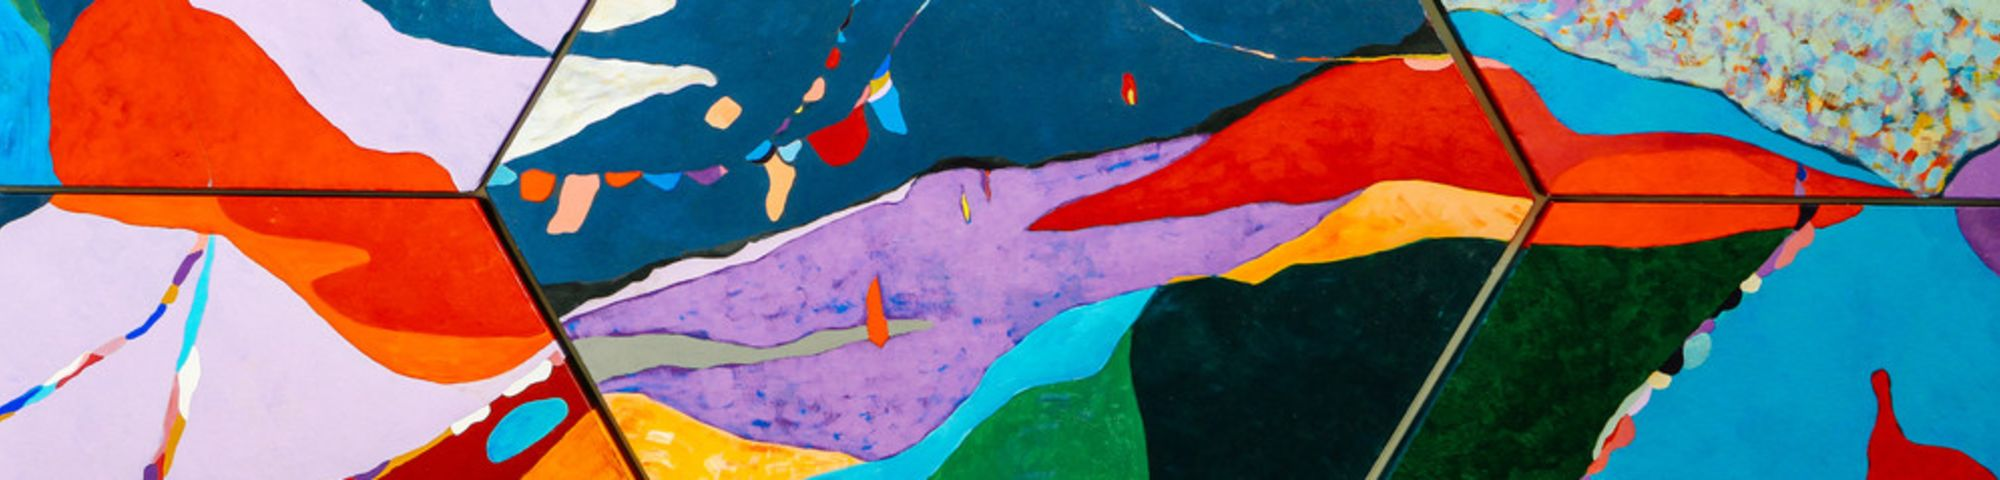 Colourful painting with sections in blue, purple, red and orange